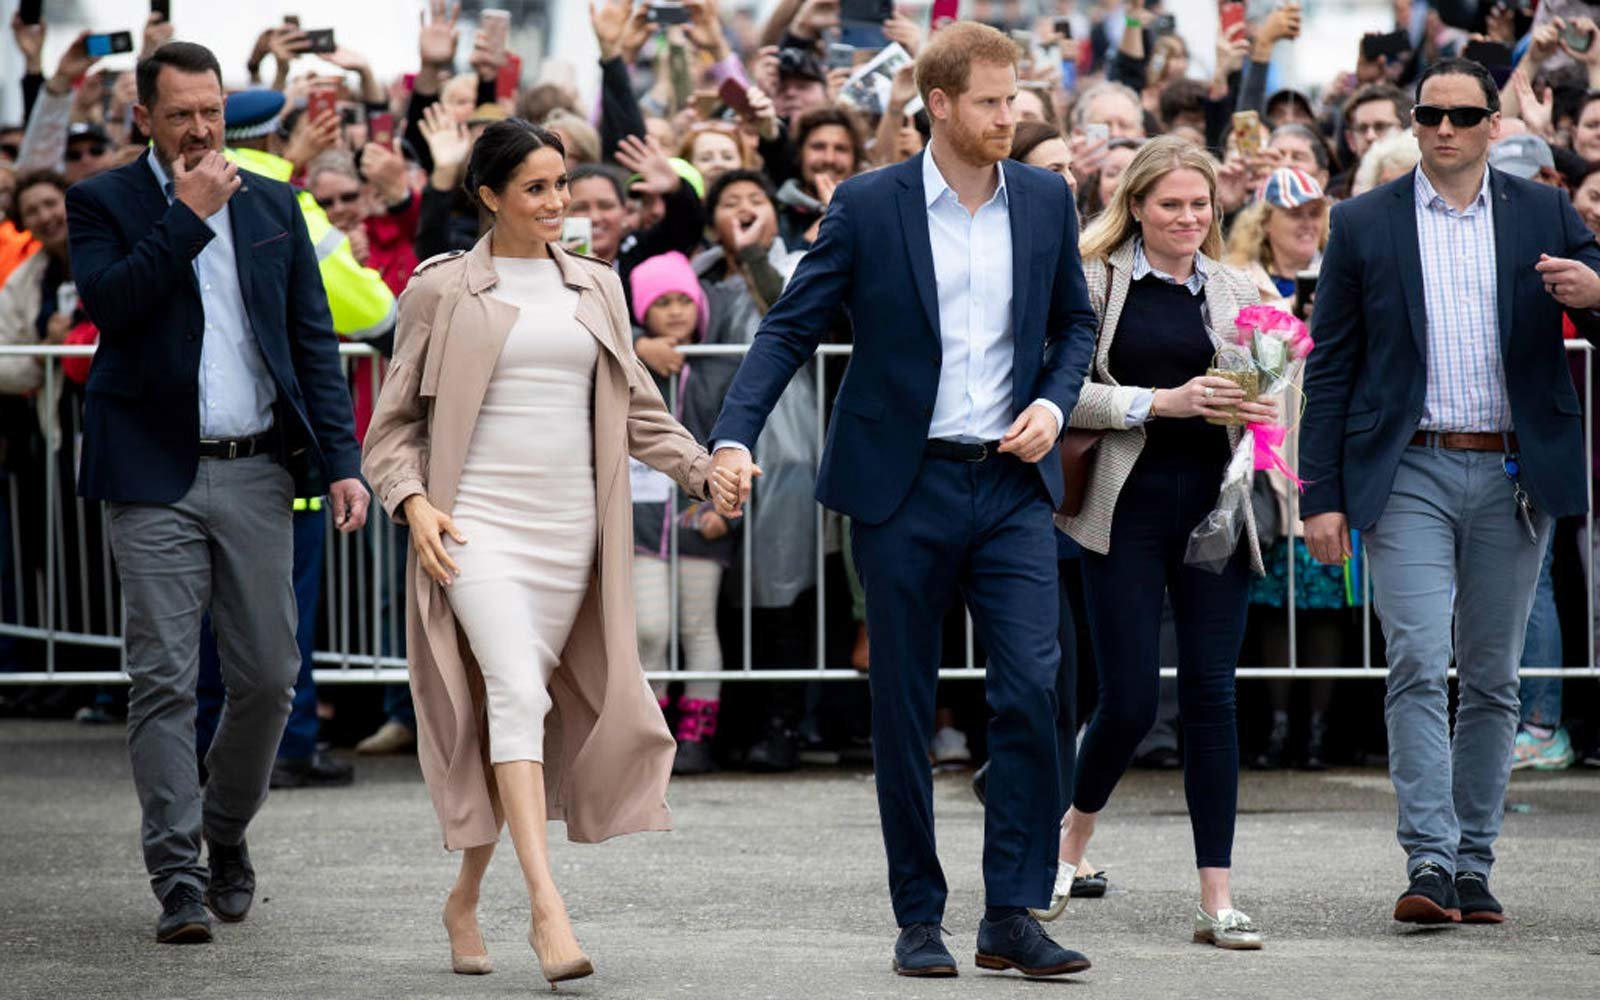 Prince Harry, Duke of Sussex and Meghan, Duchess of Sussex meet fans during a public walk along Auckland's Viaduct Harbour